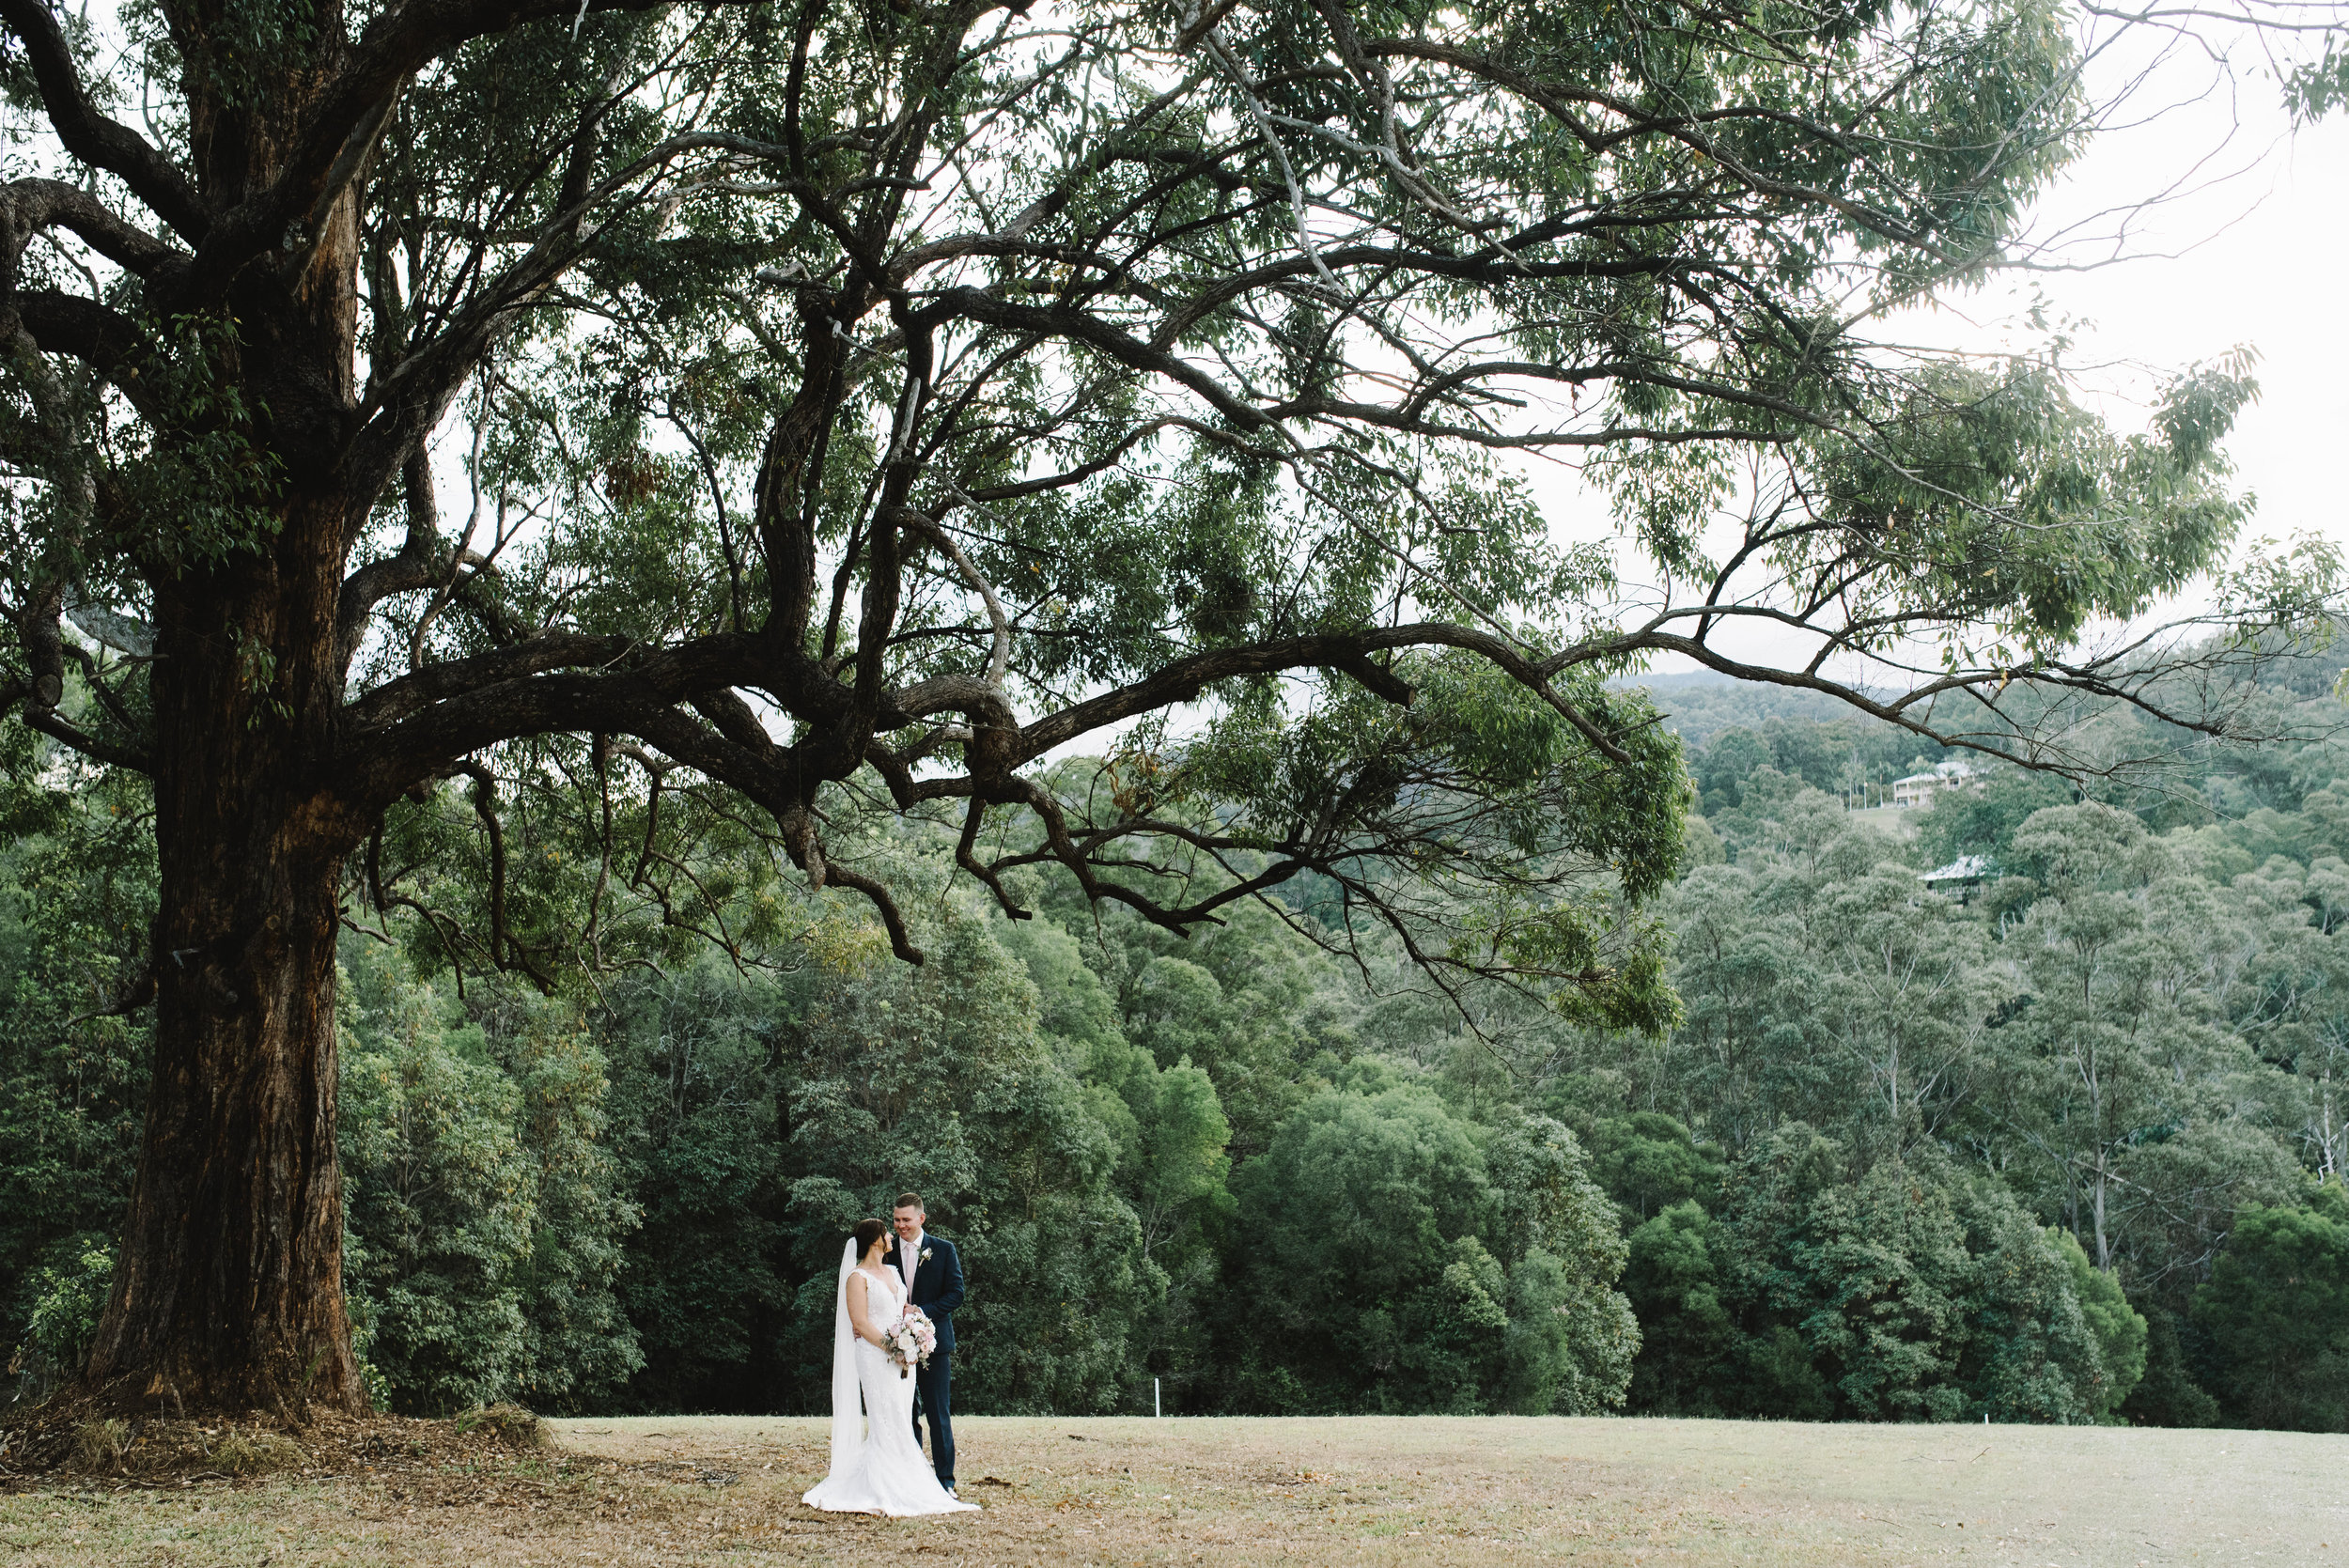 A 'posed' photo of Lauren + Chris on their wedding day at Austinvilla Estate.